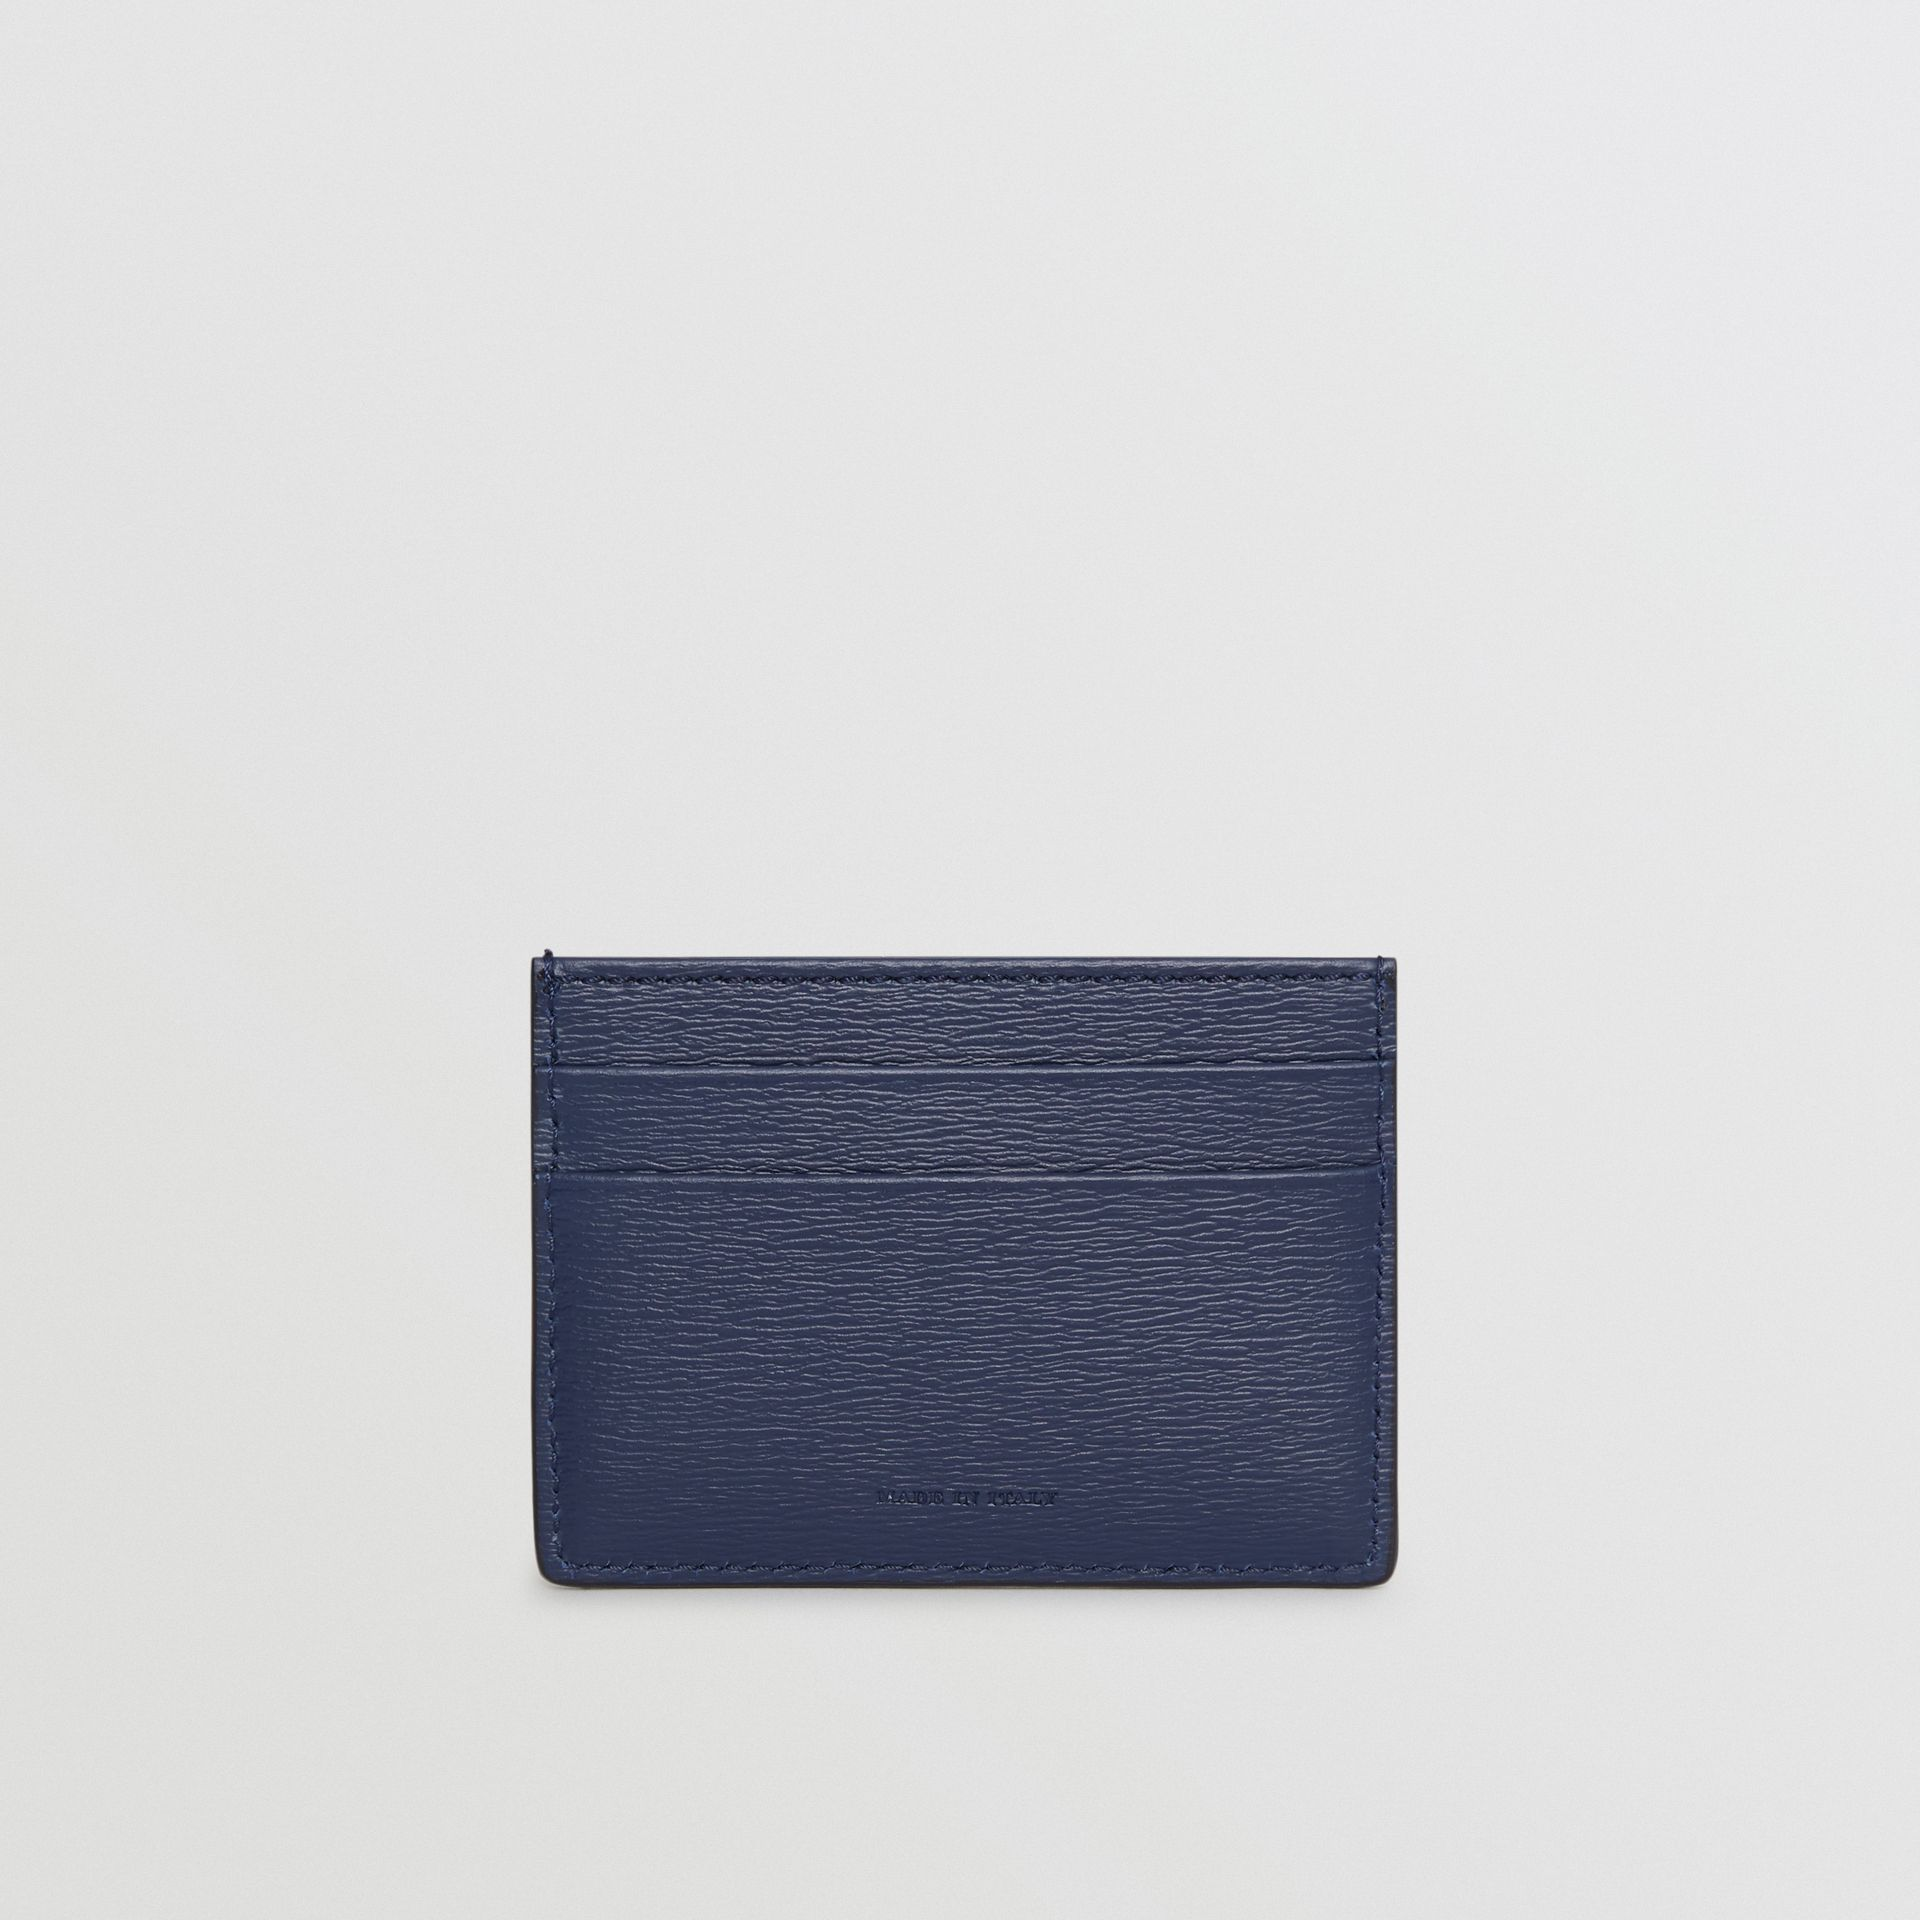 London Leather Card Case in Navy - Men | Burberry United Kingdom - gallery image 4